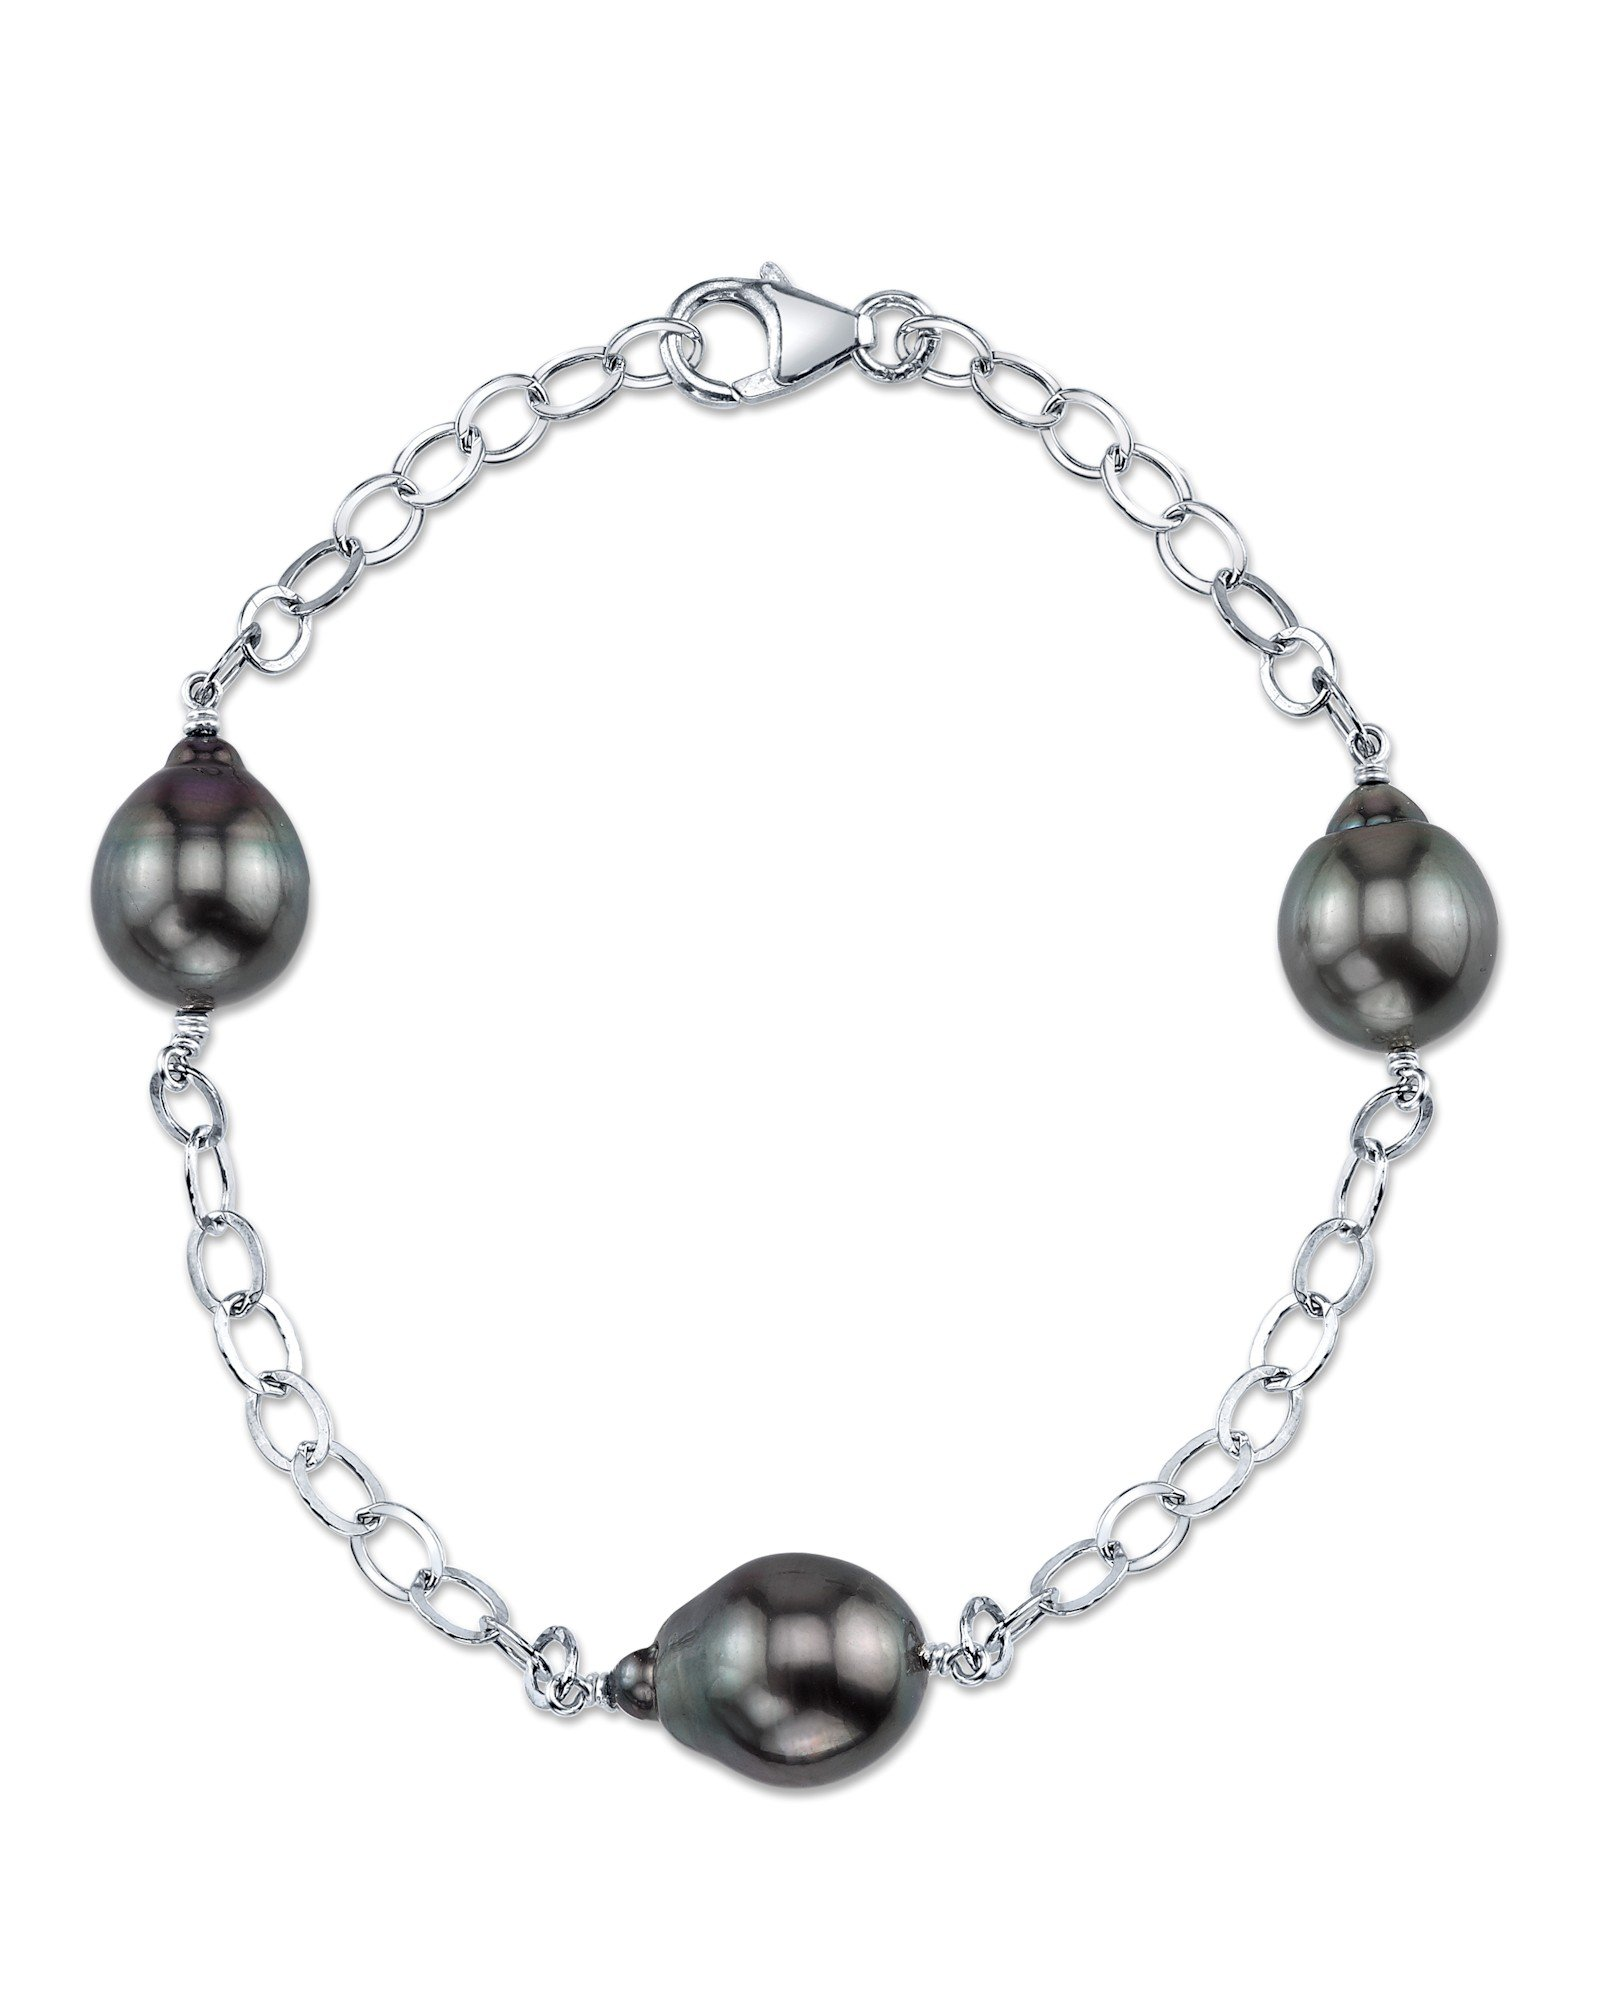 9-10 Tahitian South Sea Baroque Cultured Pearl Tincup Bracelet - AAA Quality